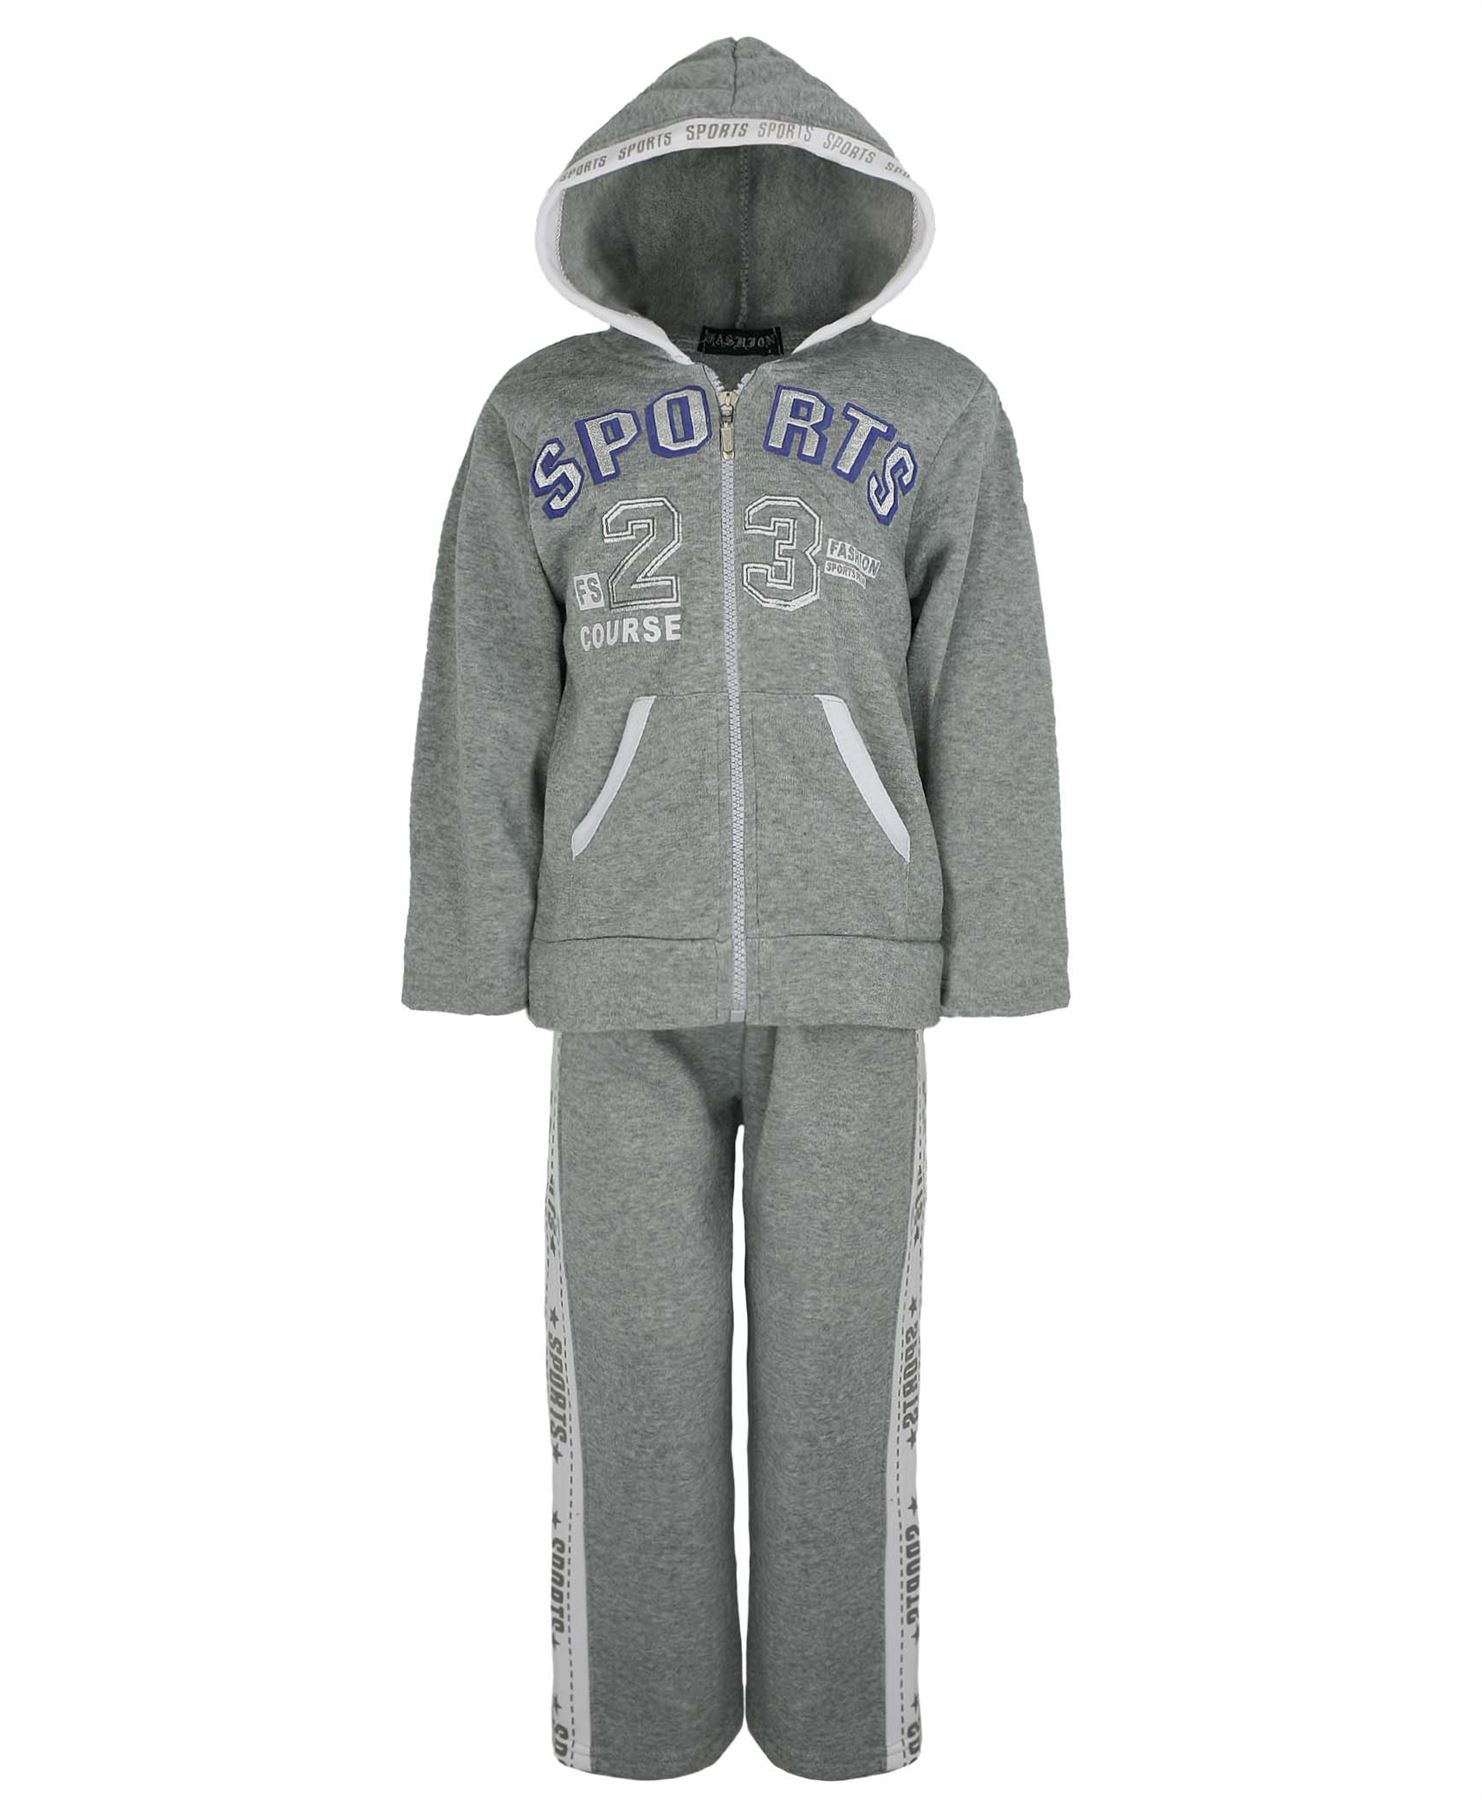 KIDS-TRACKSUIT-JOGGING-BOTTOMS-HOODED-TOP-23-SPORTS-FASHION-PRINT-1-12-YEARS